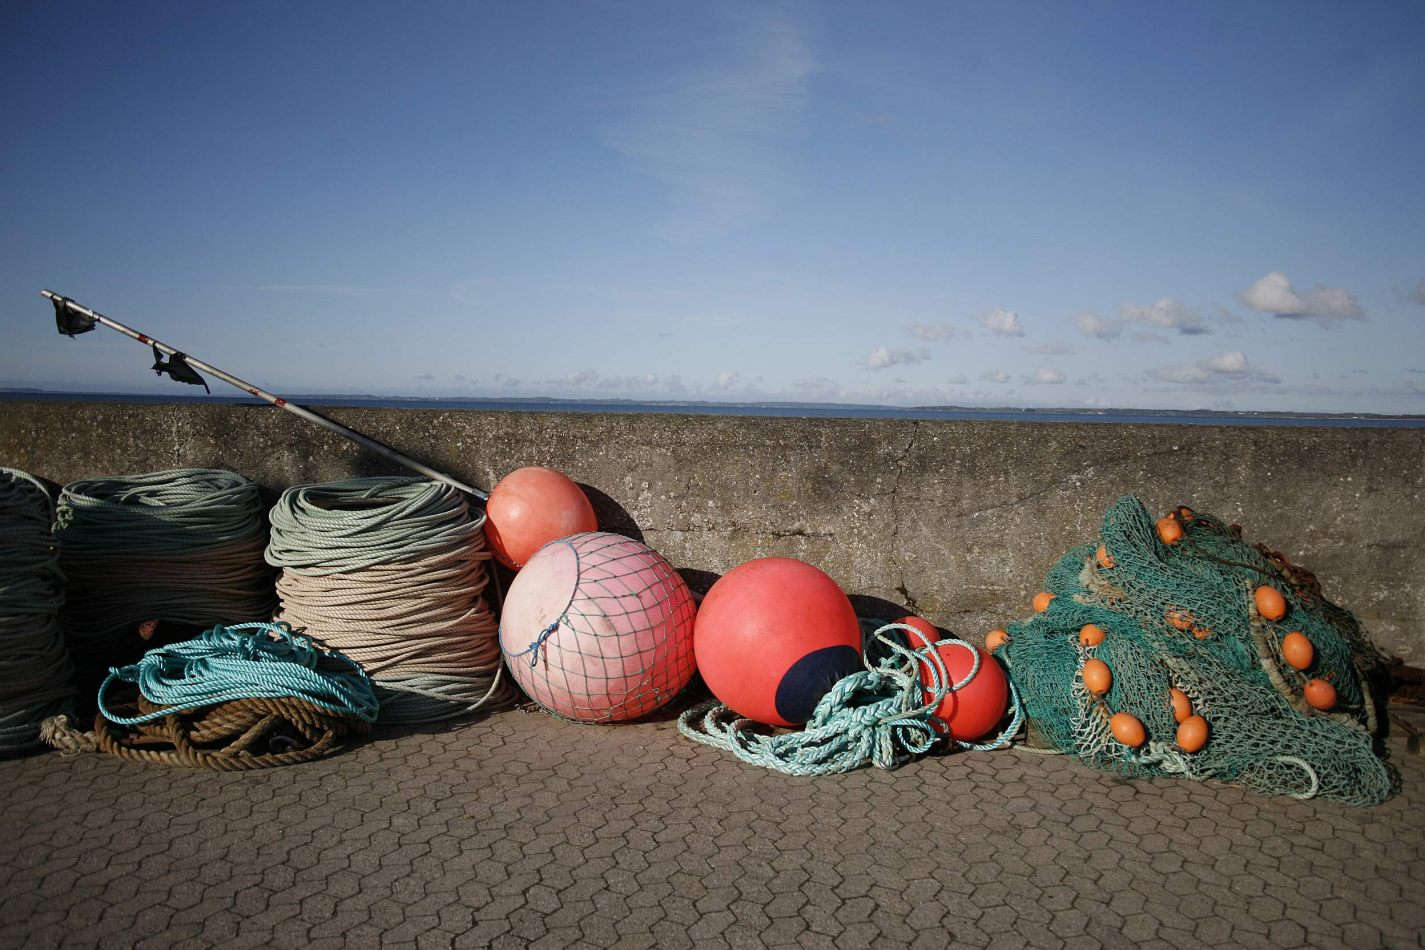 Anthony Ellis Photography: Silent Afternoons - Nets and Buoys